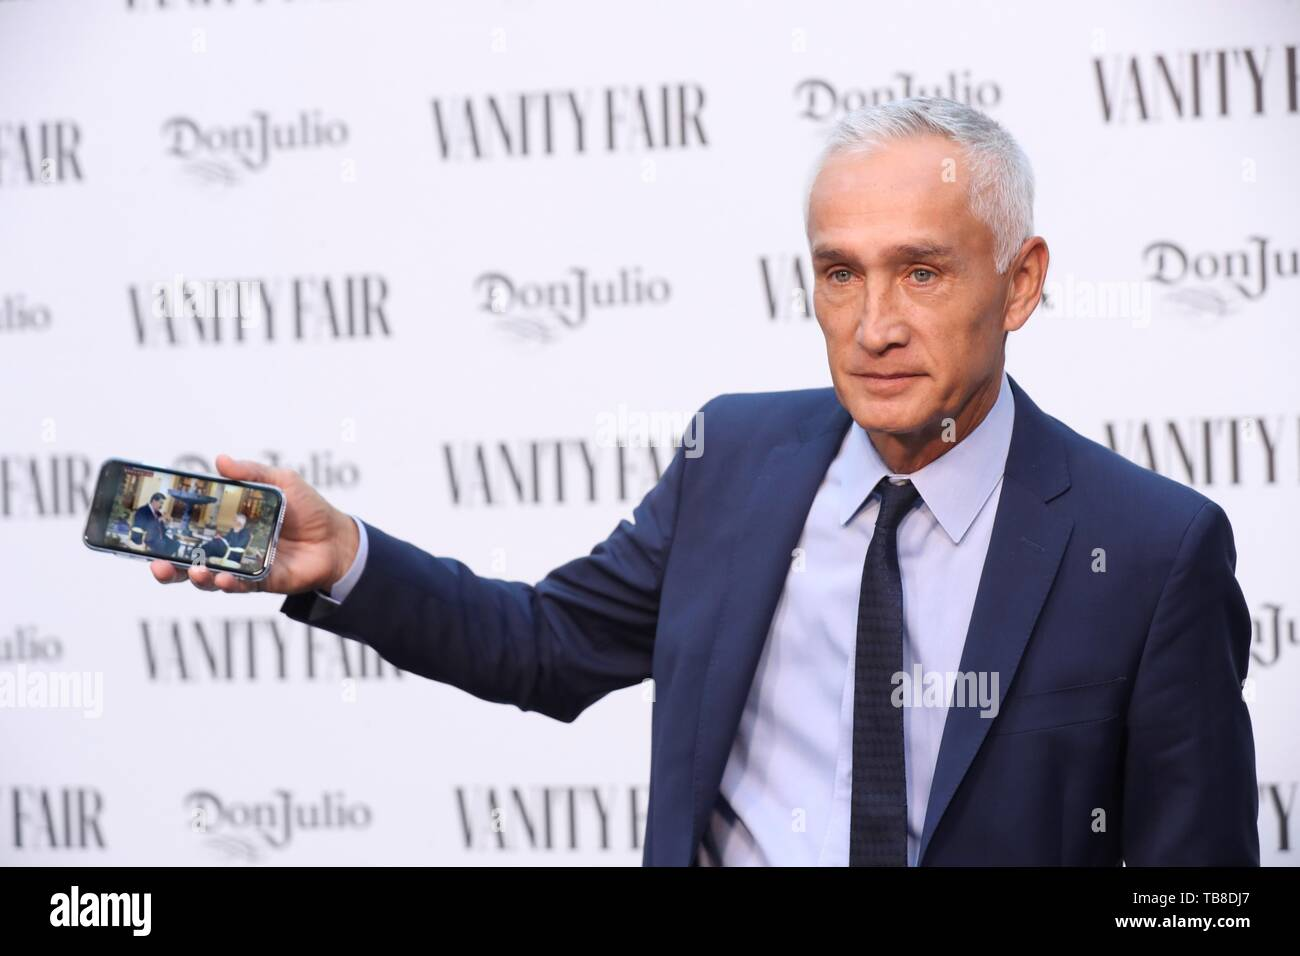 official shop cheap for discount details for Jorge Ramos Stock Photos & Jorge Ramos Stock Images - Alamy